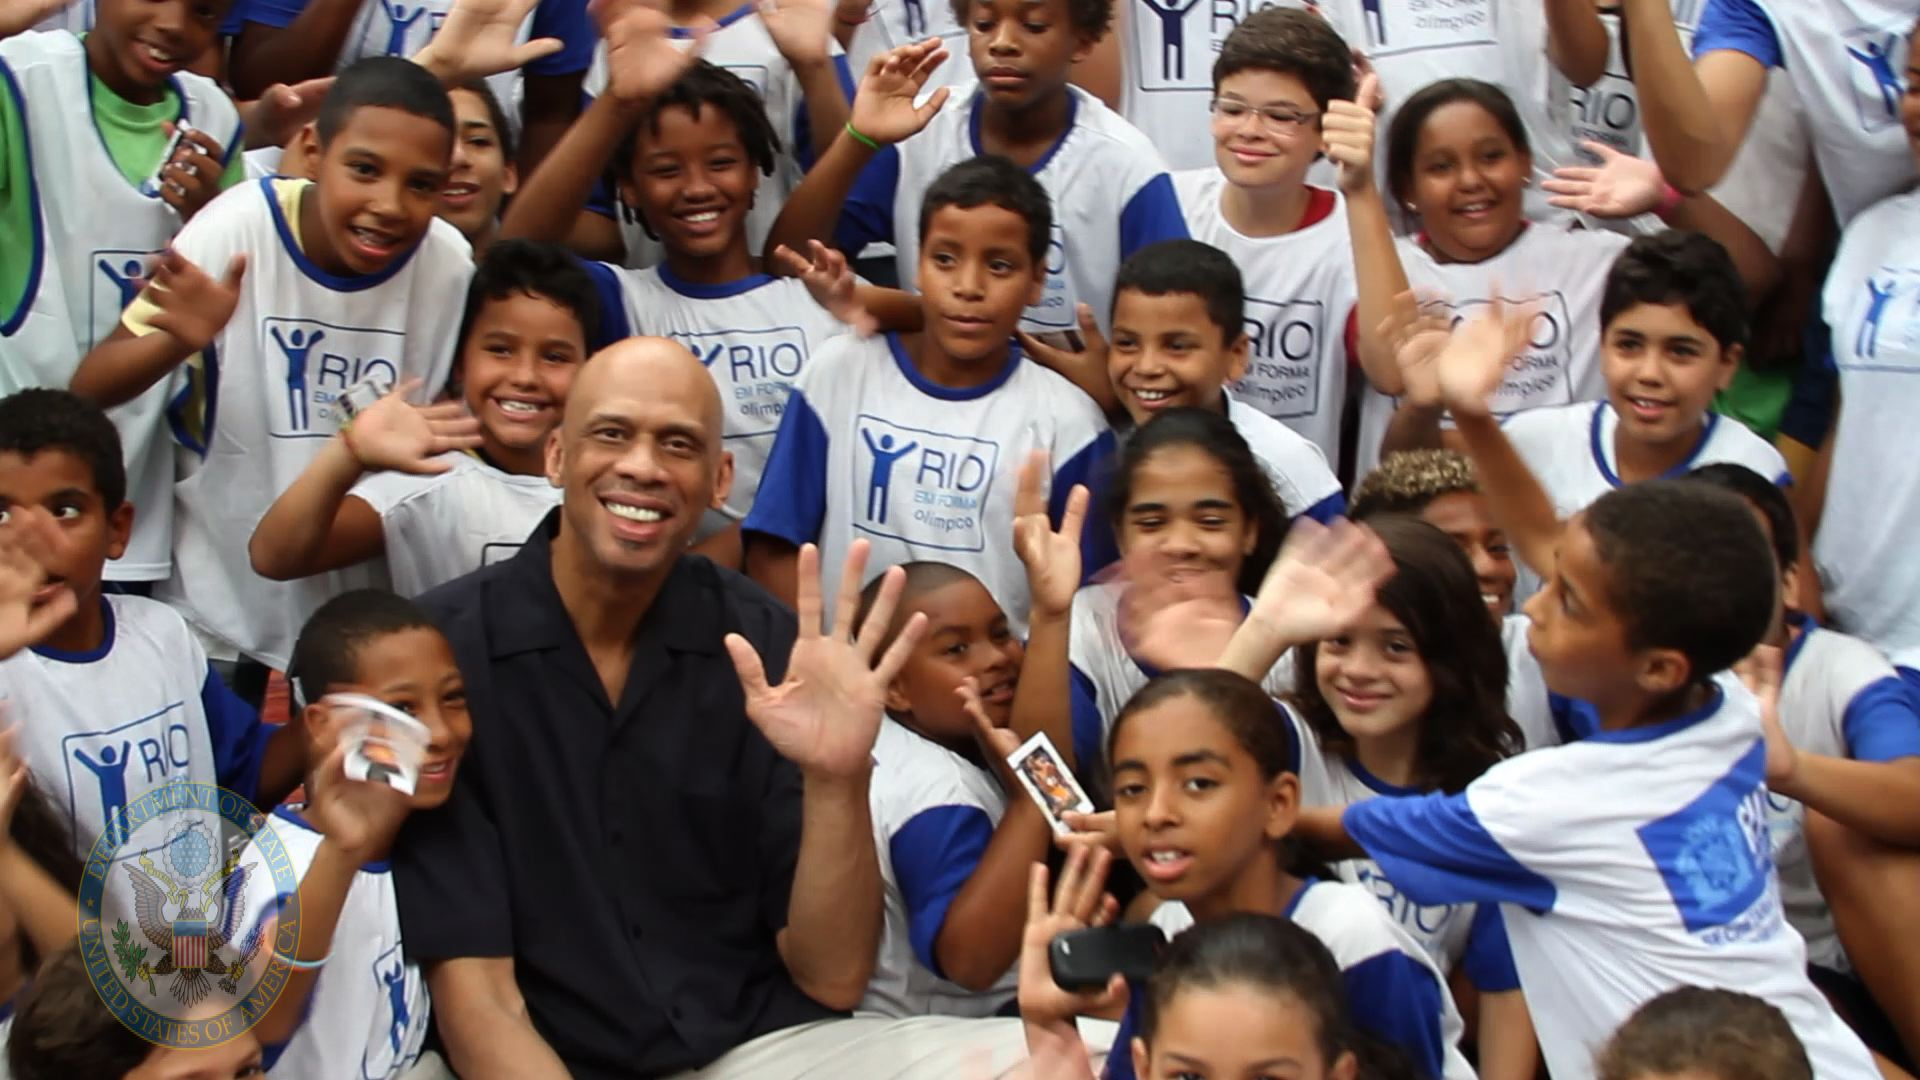 https://upload.wikimedia.org/wikipedia/commons/9/98/Global_Cultural_Ambassador_Kareem_Abdul-Jabbar_Poses_for_a_Photo_With_Young_Brazilians_(6767471823).jpg